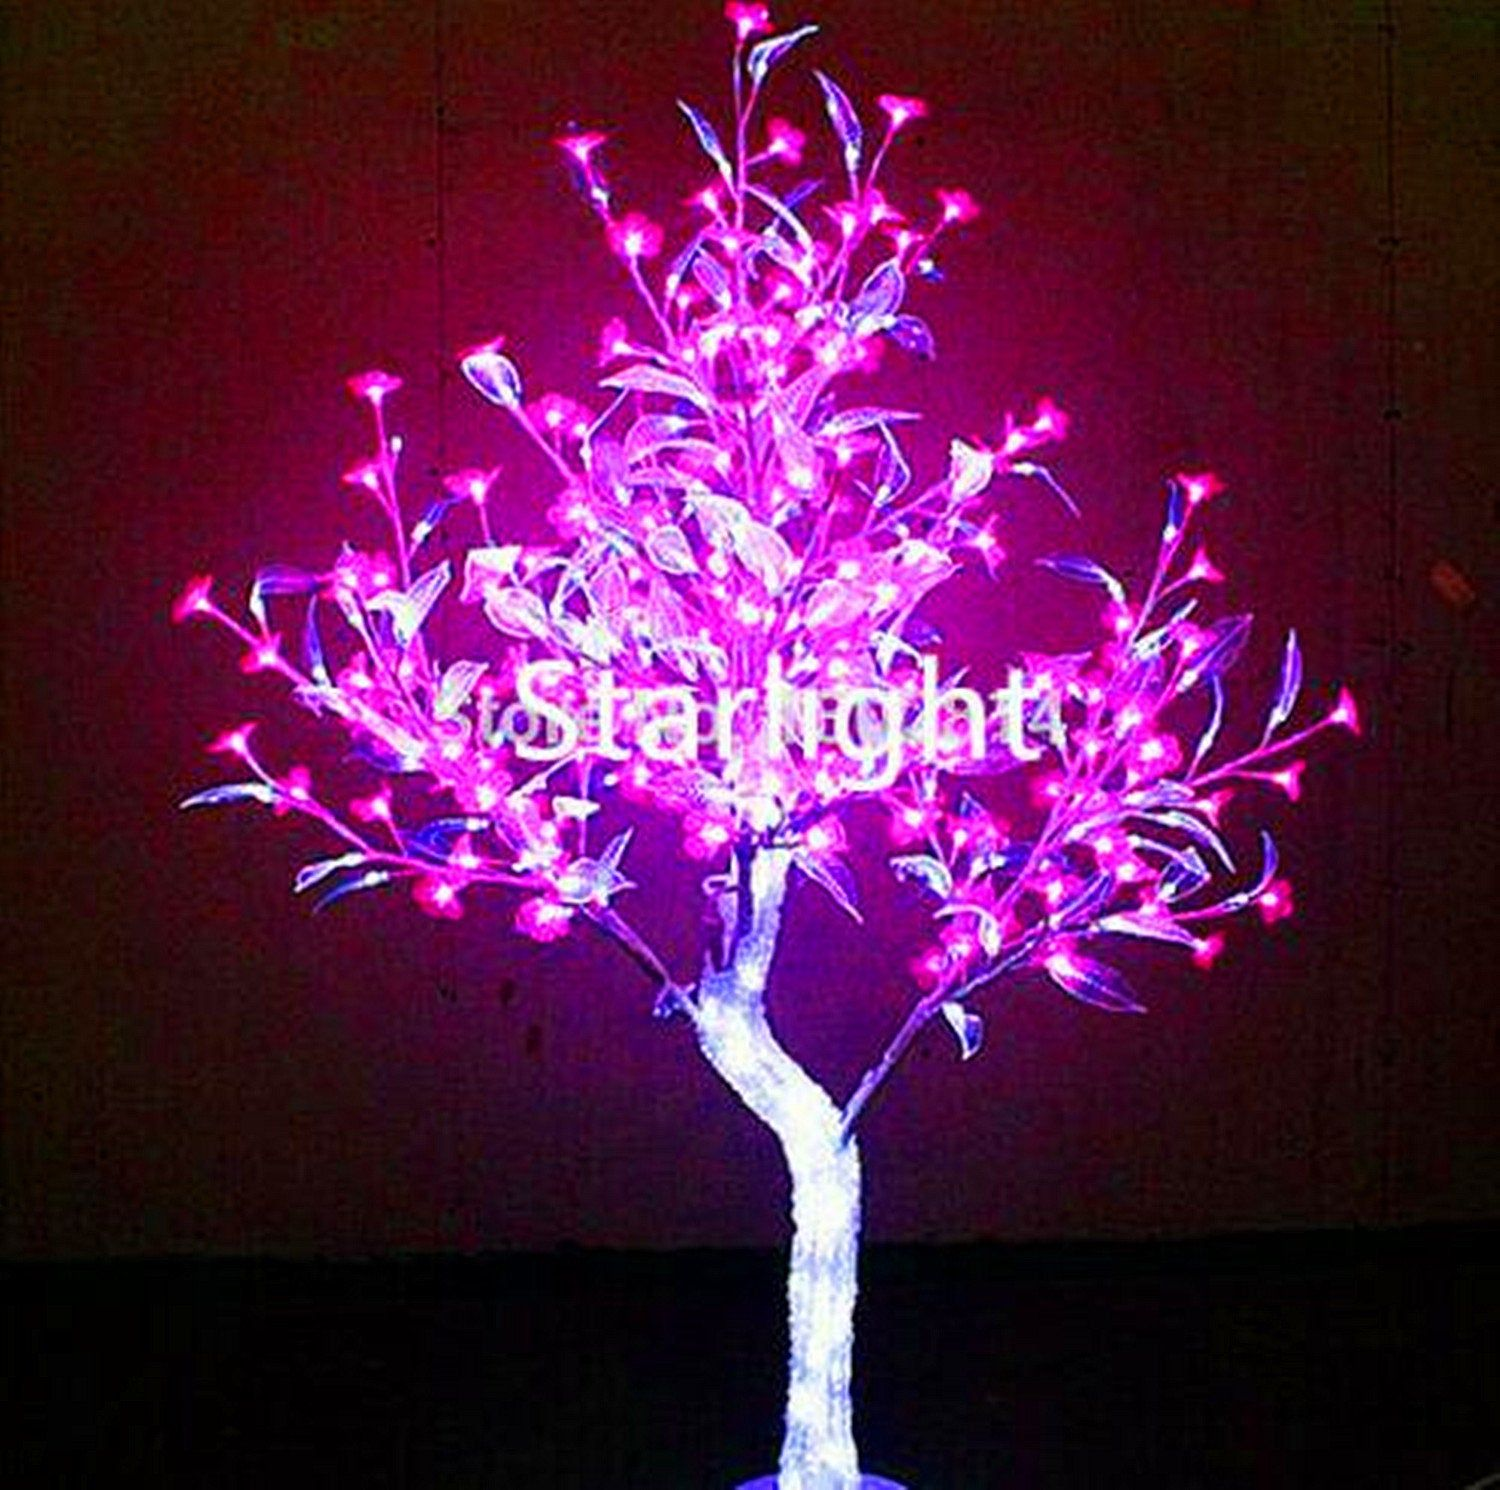 5ft 1 5m Outdoor Led Crystal Cherry Blossom Tree Pink Flower Clear Leaf Home Party Wedding G In 2021 Blossom Trees Cherry Blossom Tree Artificial Cherry Blossom Tree